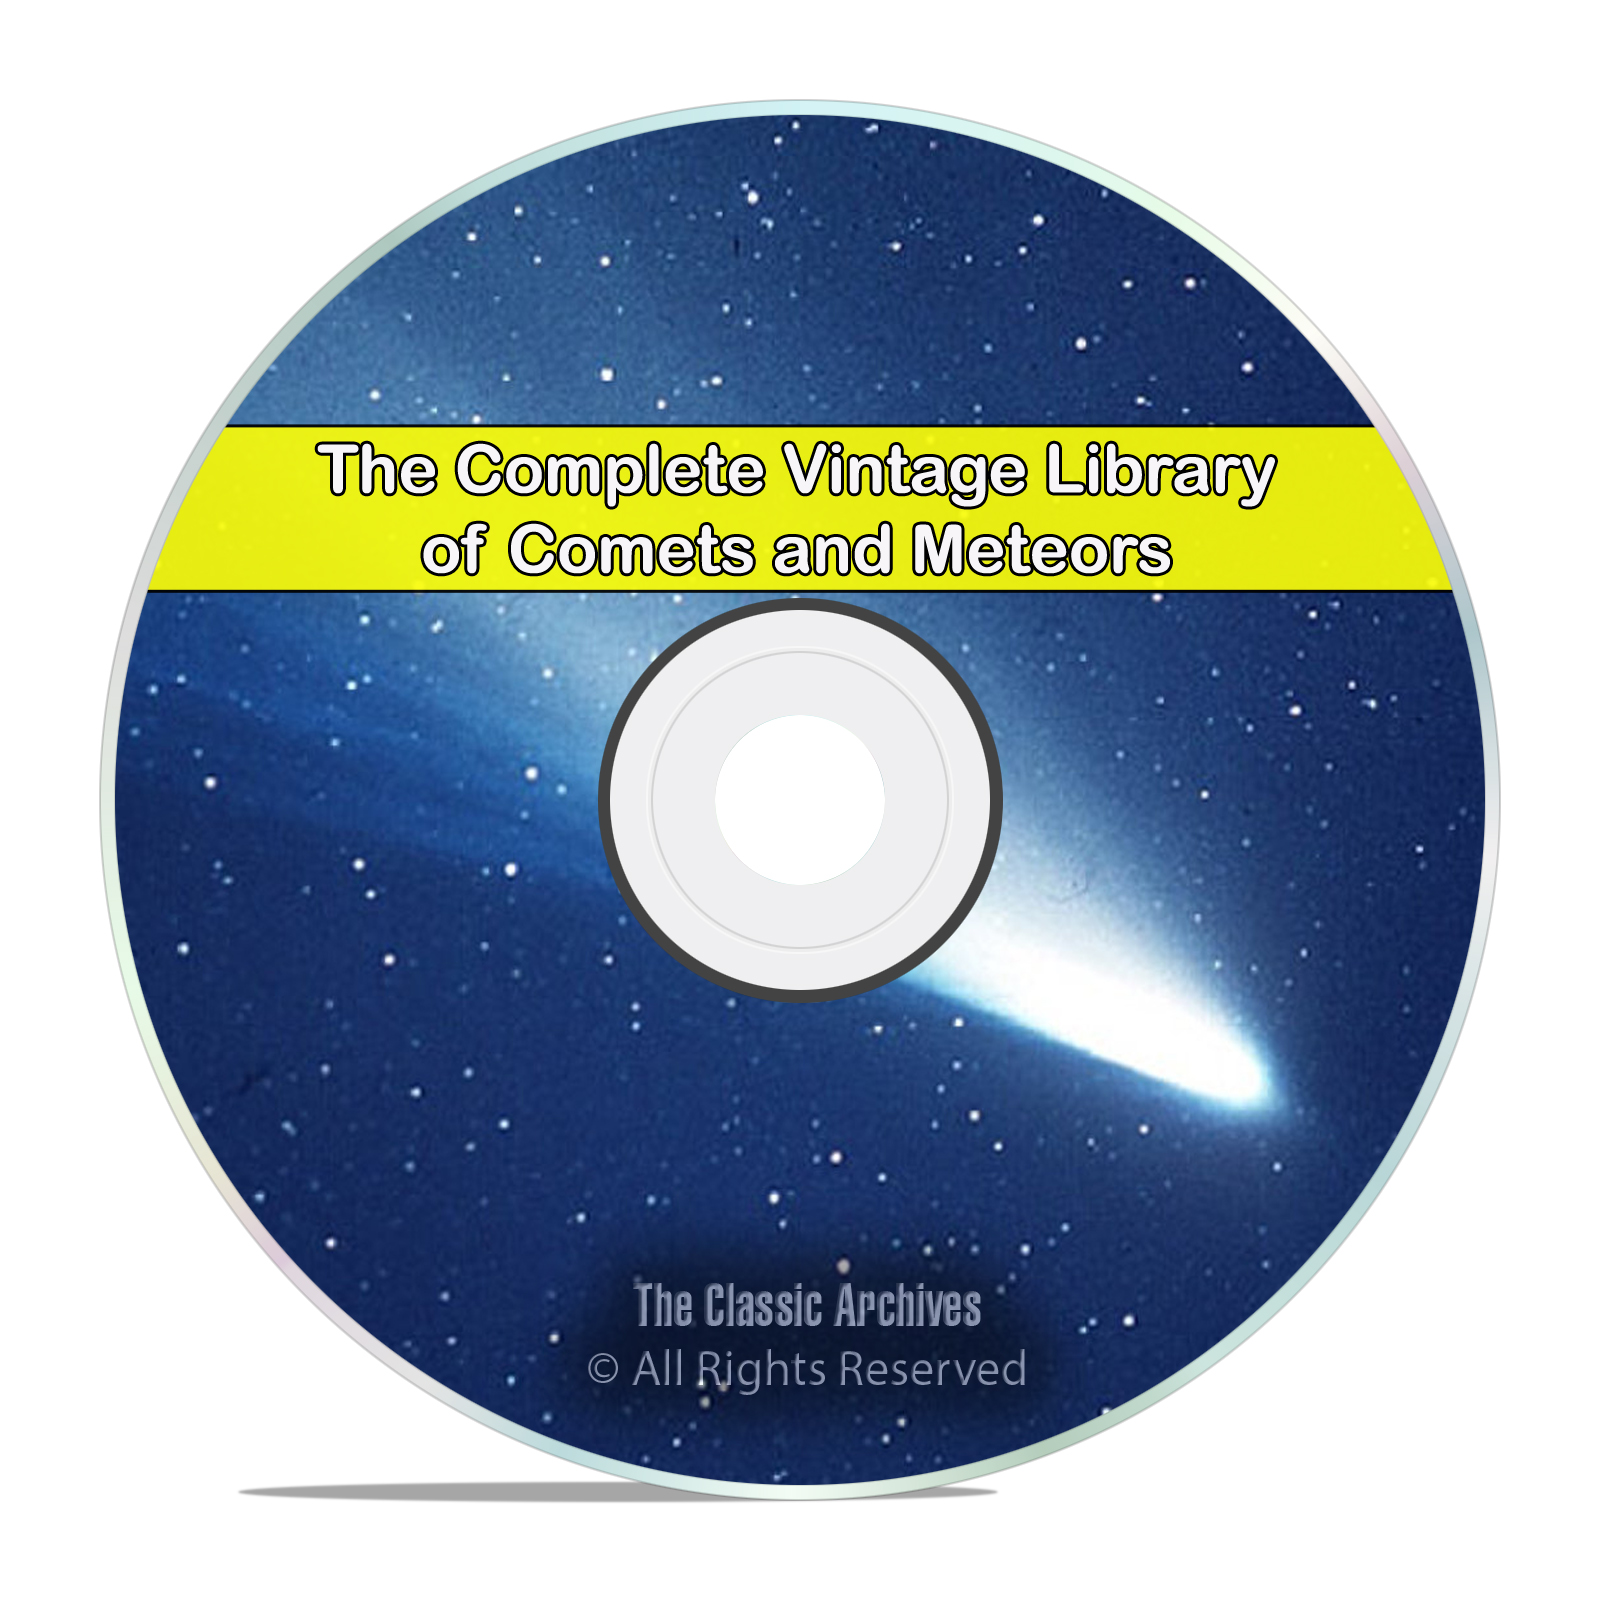 Library of Comets & Meteors, 76 Books on Astronomy Meteorites Stars PDF DVD